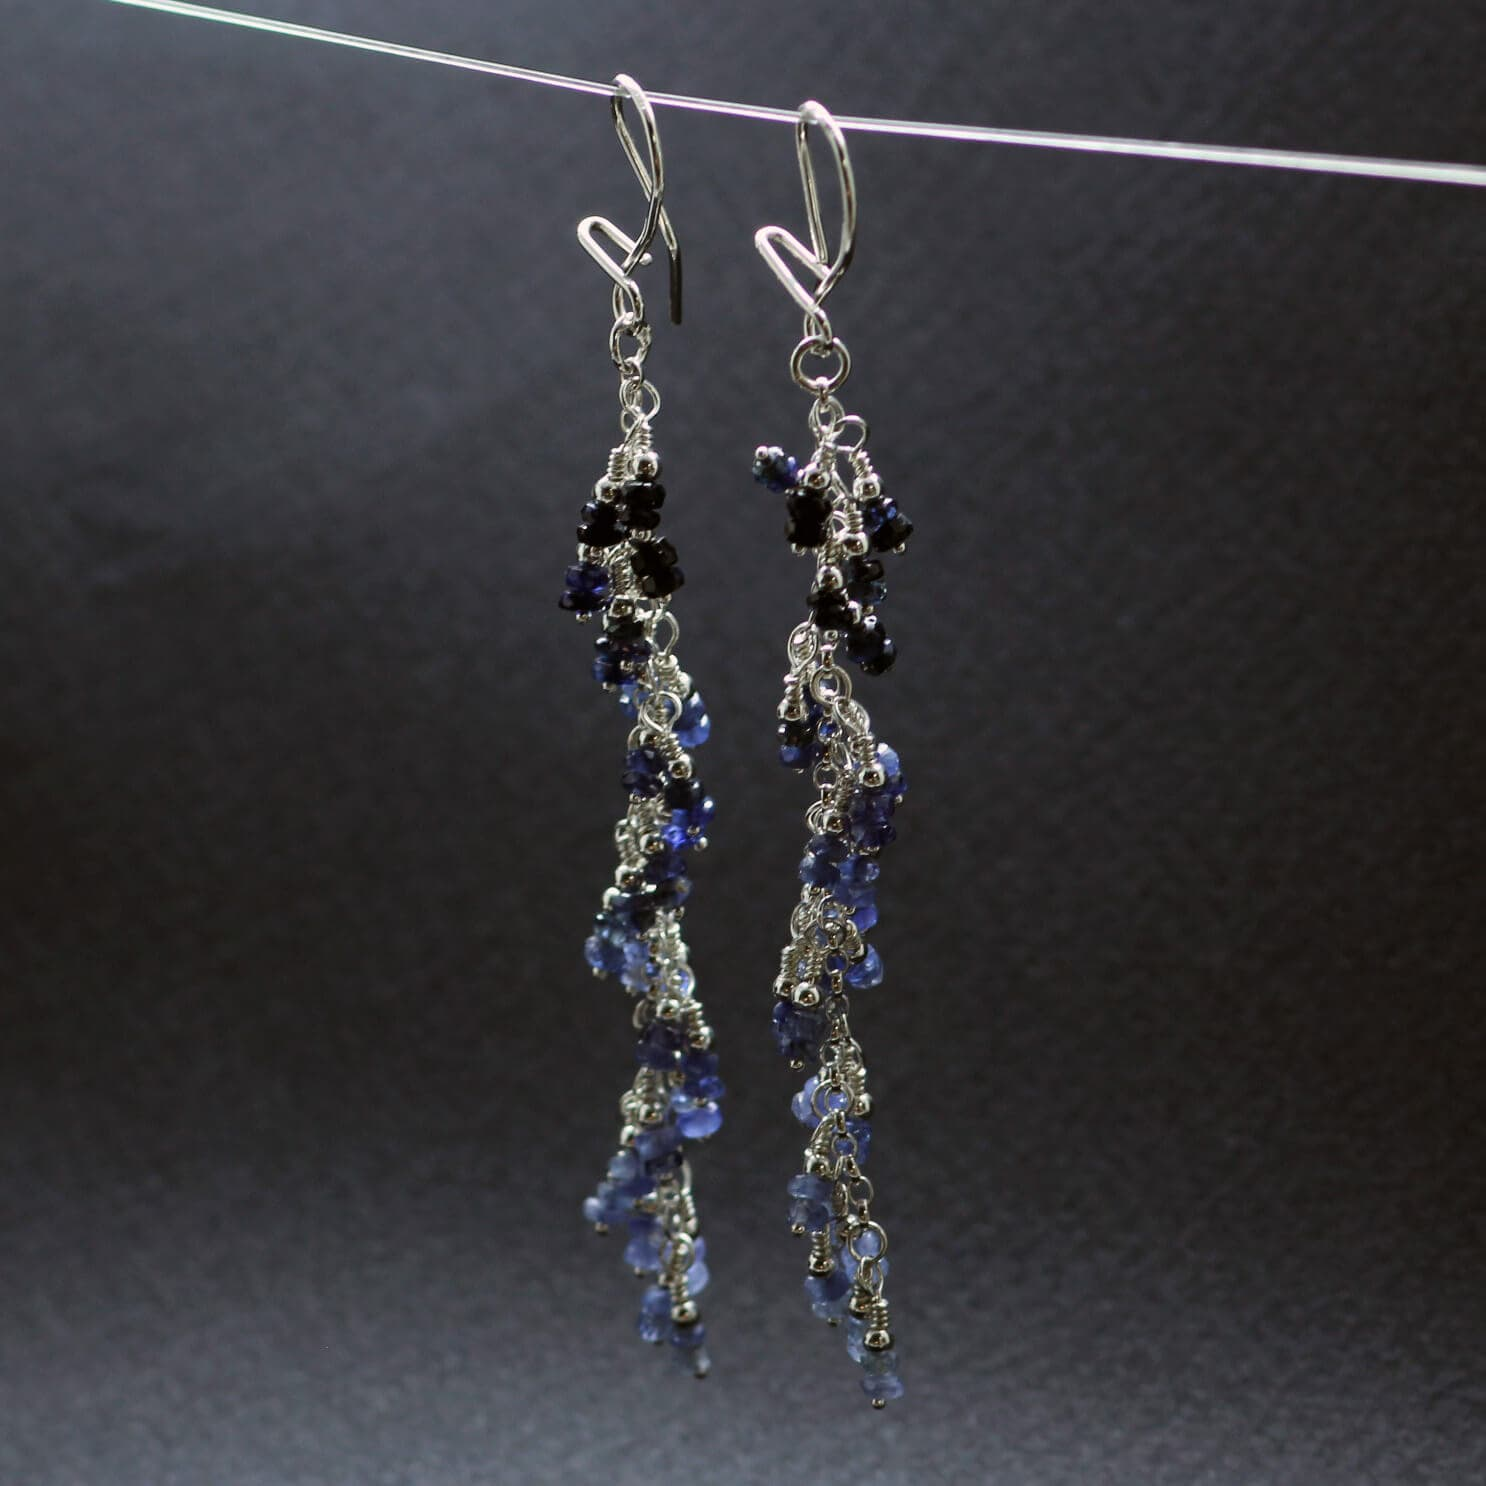 Blue Sapphire gemstone Silver earrings, handcrafted by Sophie Saunders